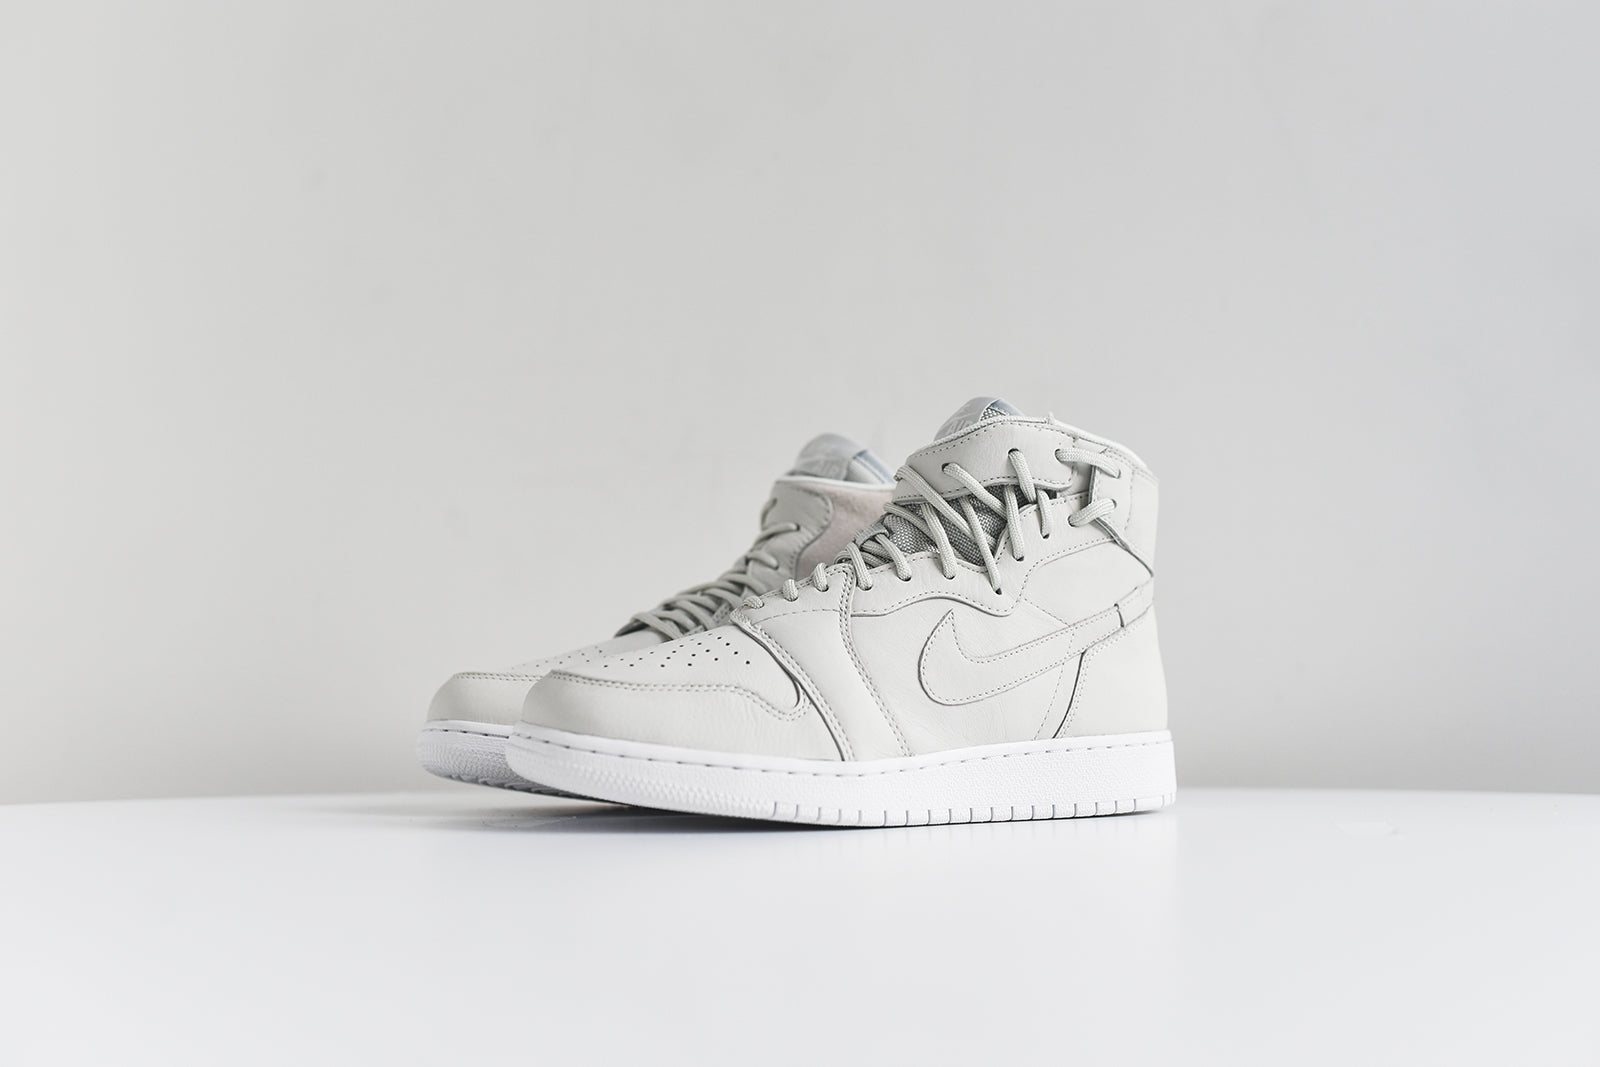 Nike Women's Air Jordan 1 Rebel Xx High Top Sneaker